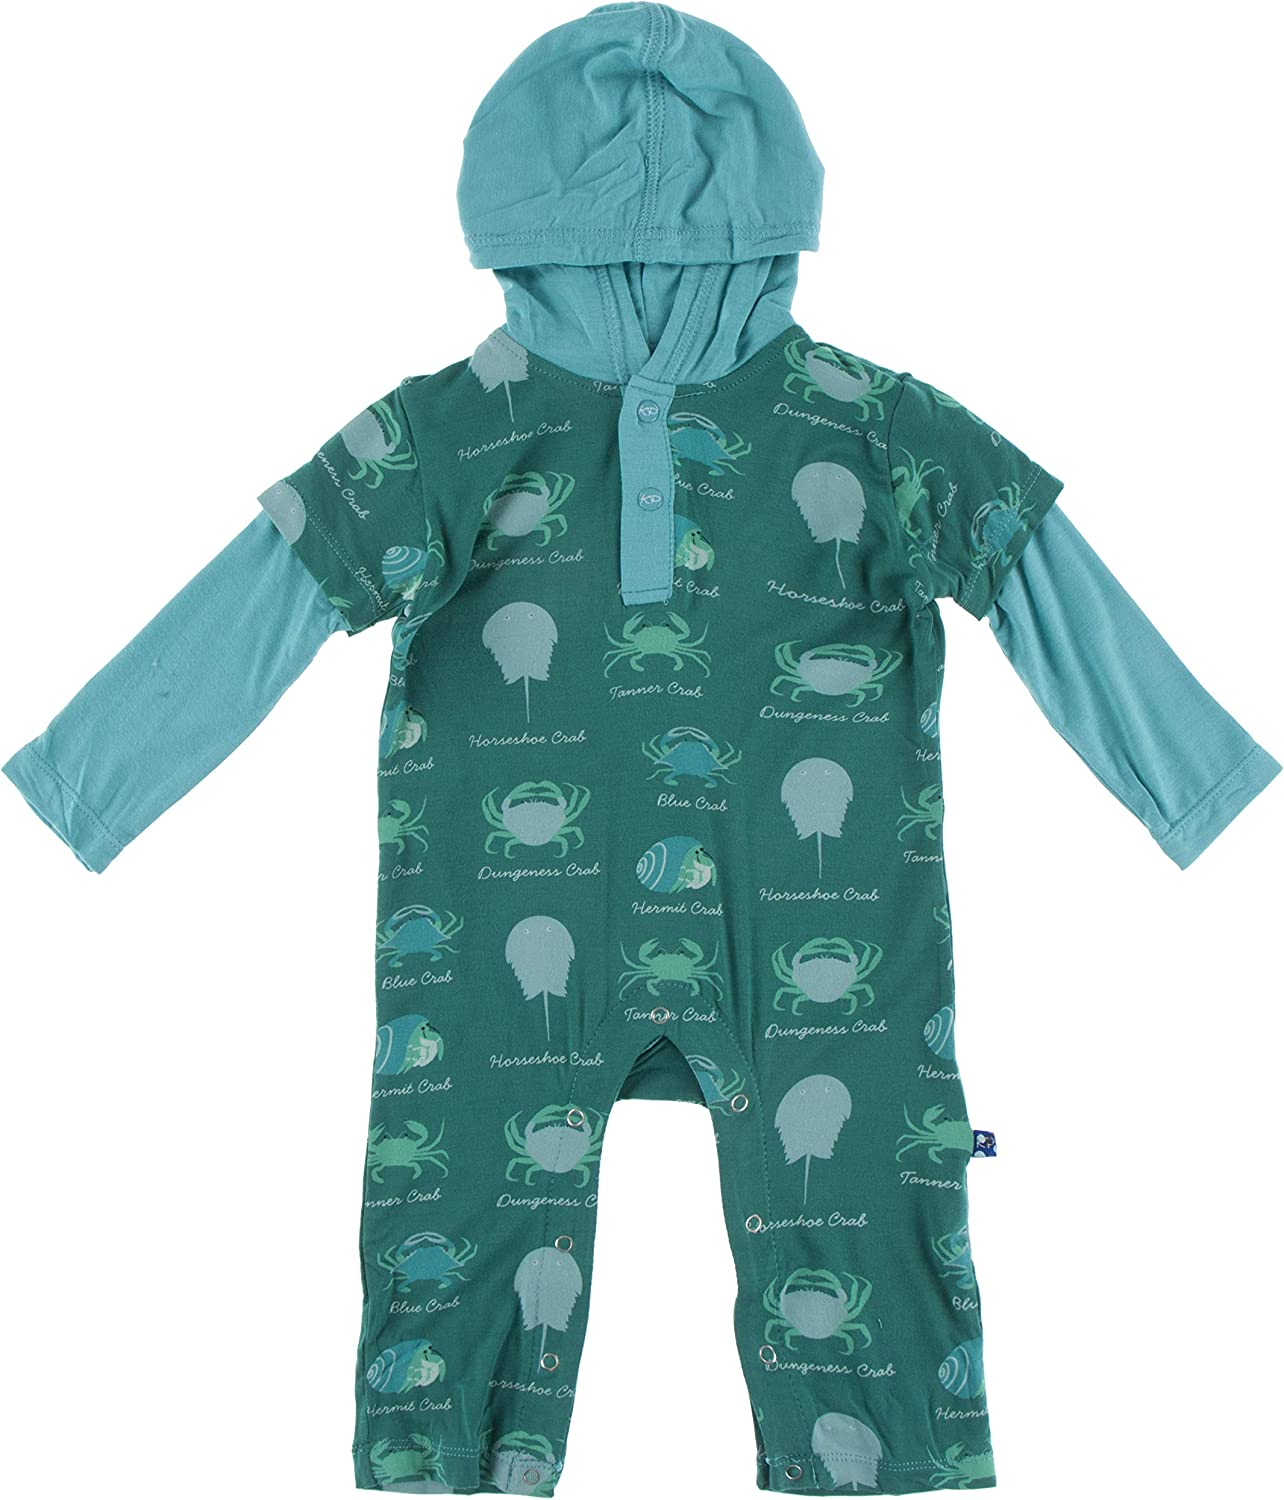 All items in the store KicKee Pants Long Sleeve Hoodie Clothes Soft Baby Seasonal Wrap Introduction Rompers Super